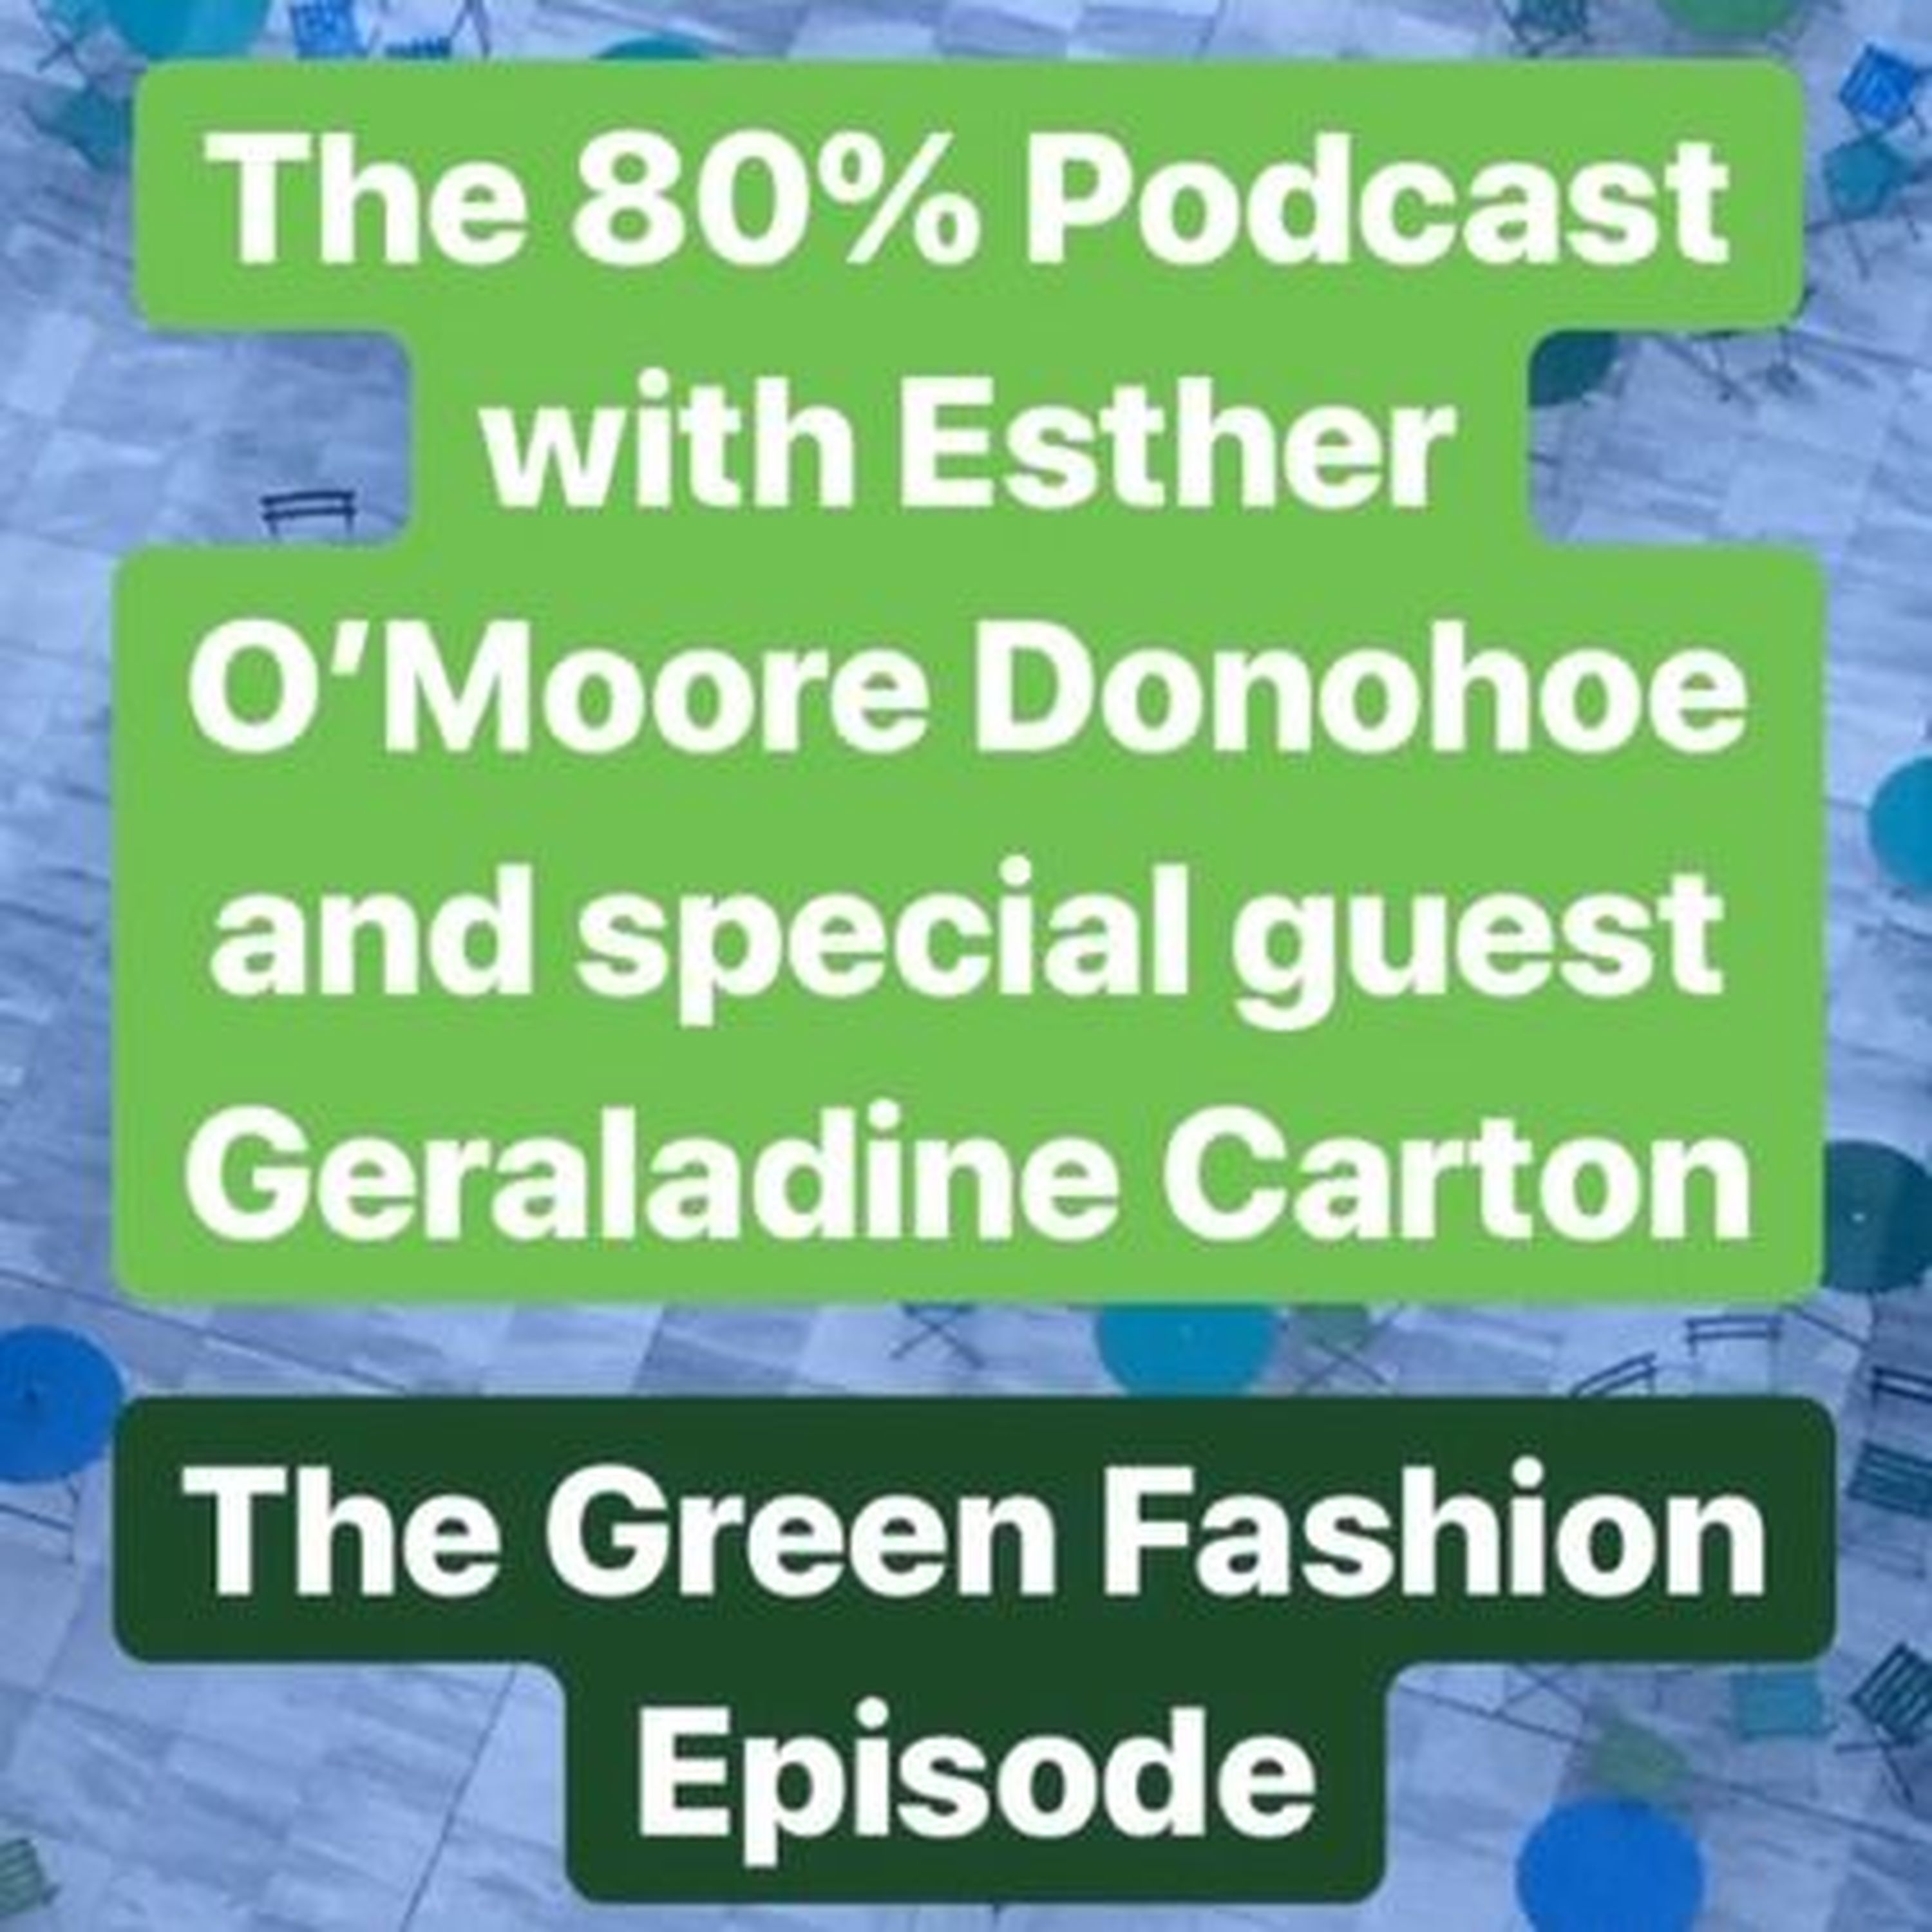 60 Geraldine Carton   The 80% with Esther O'Moore Donohoe on acast